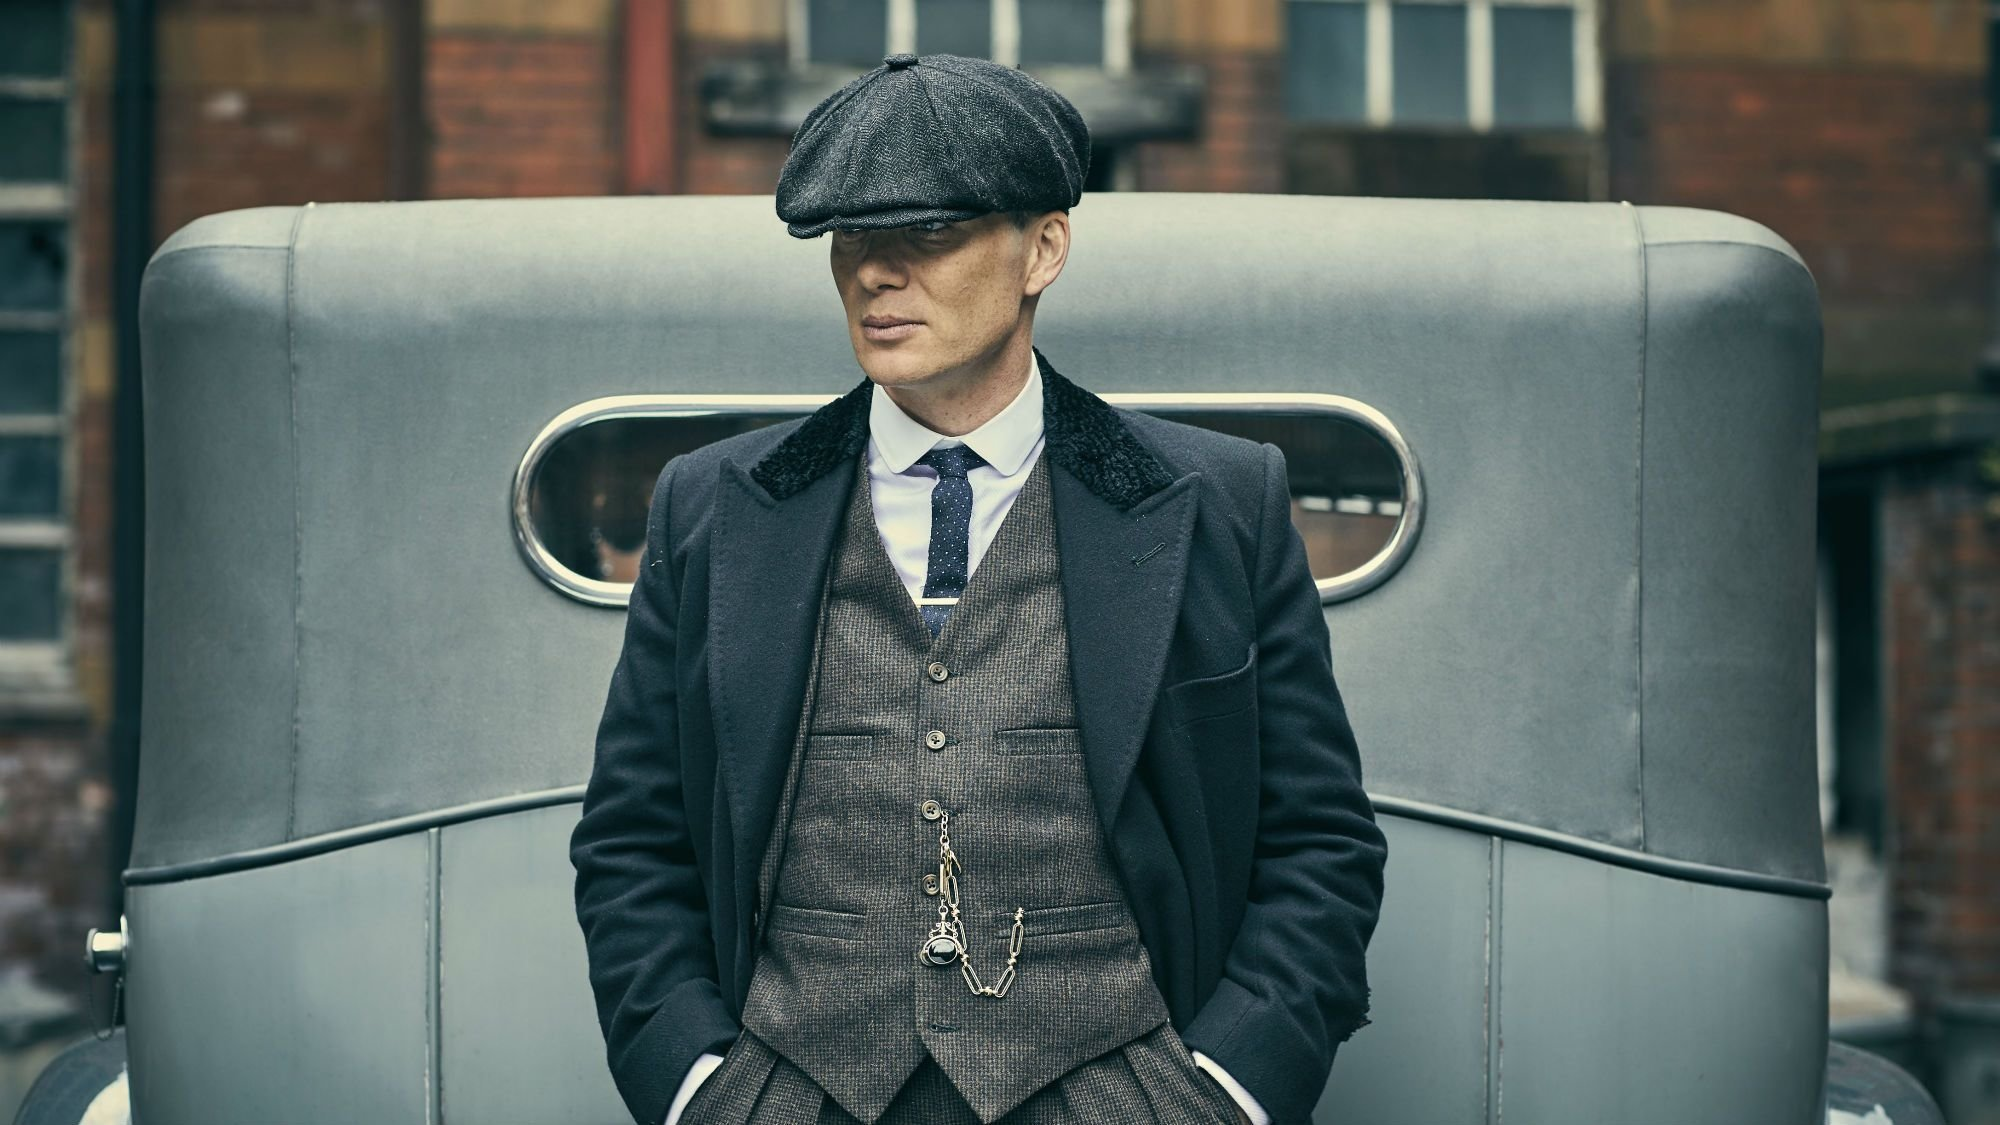 PEAKY BLİNDERS: THOMAS SHELBY